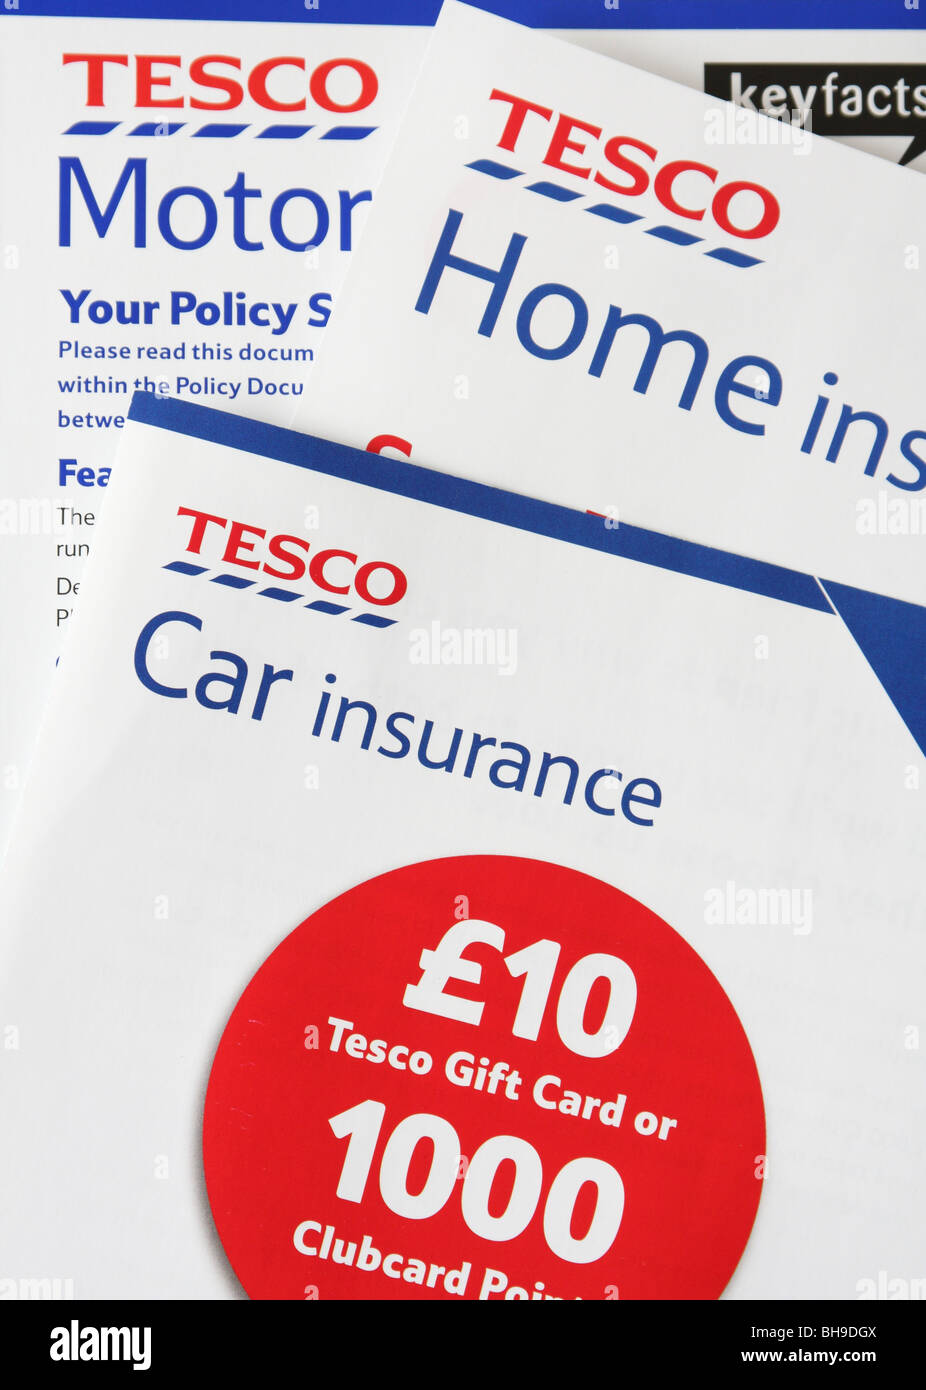 Tesco - Supermarkets | Online Groceries, Clubcard & Recipes